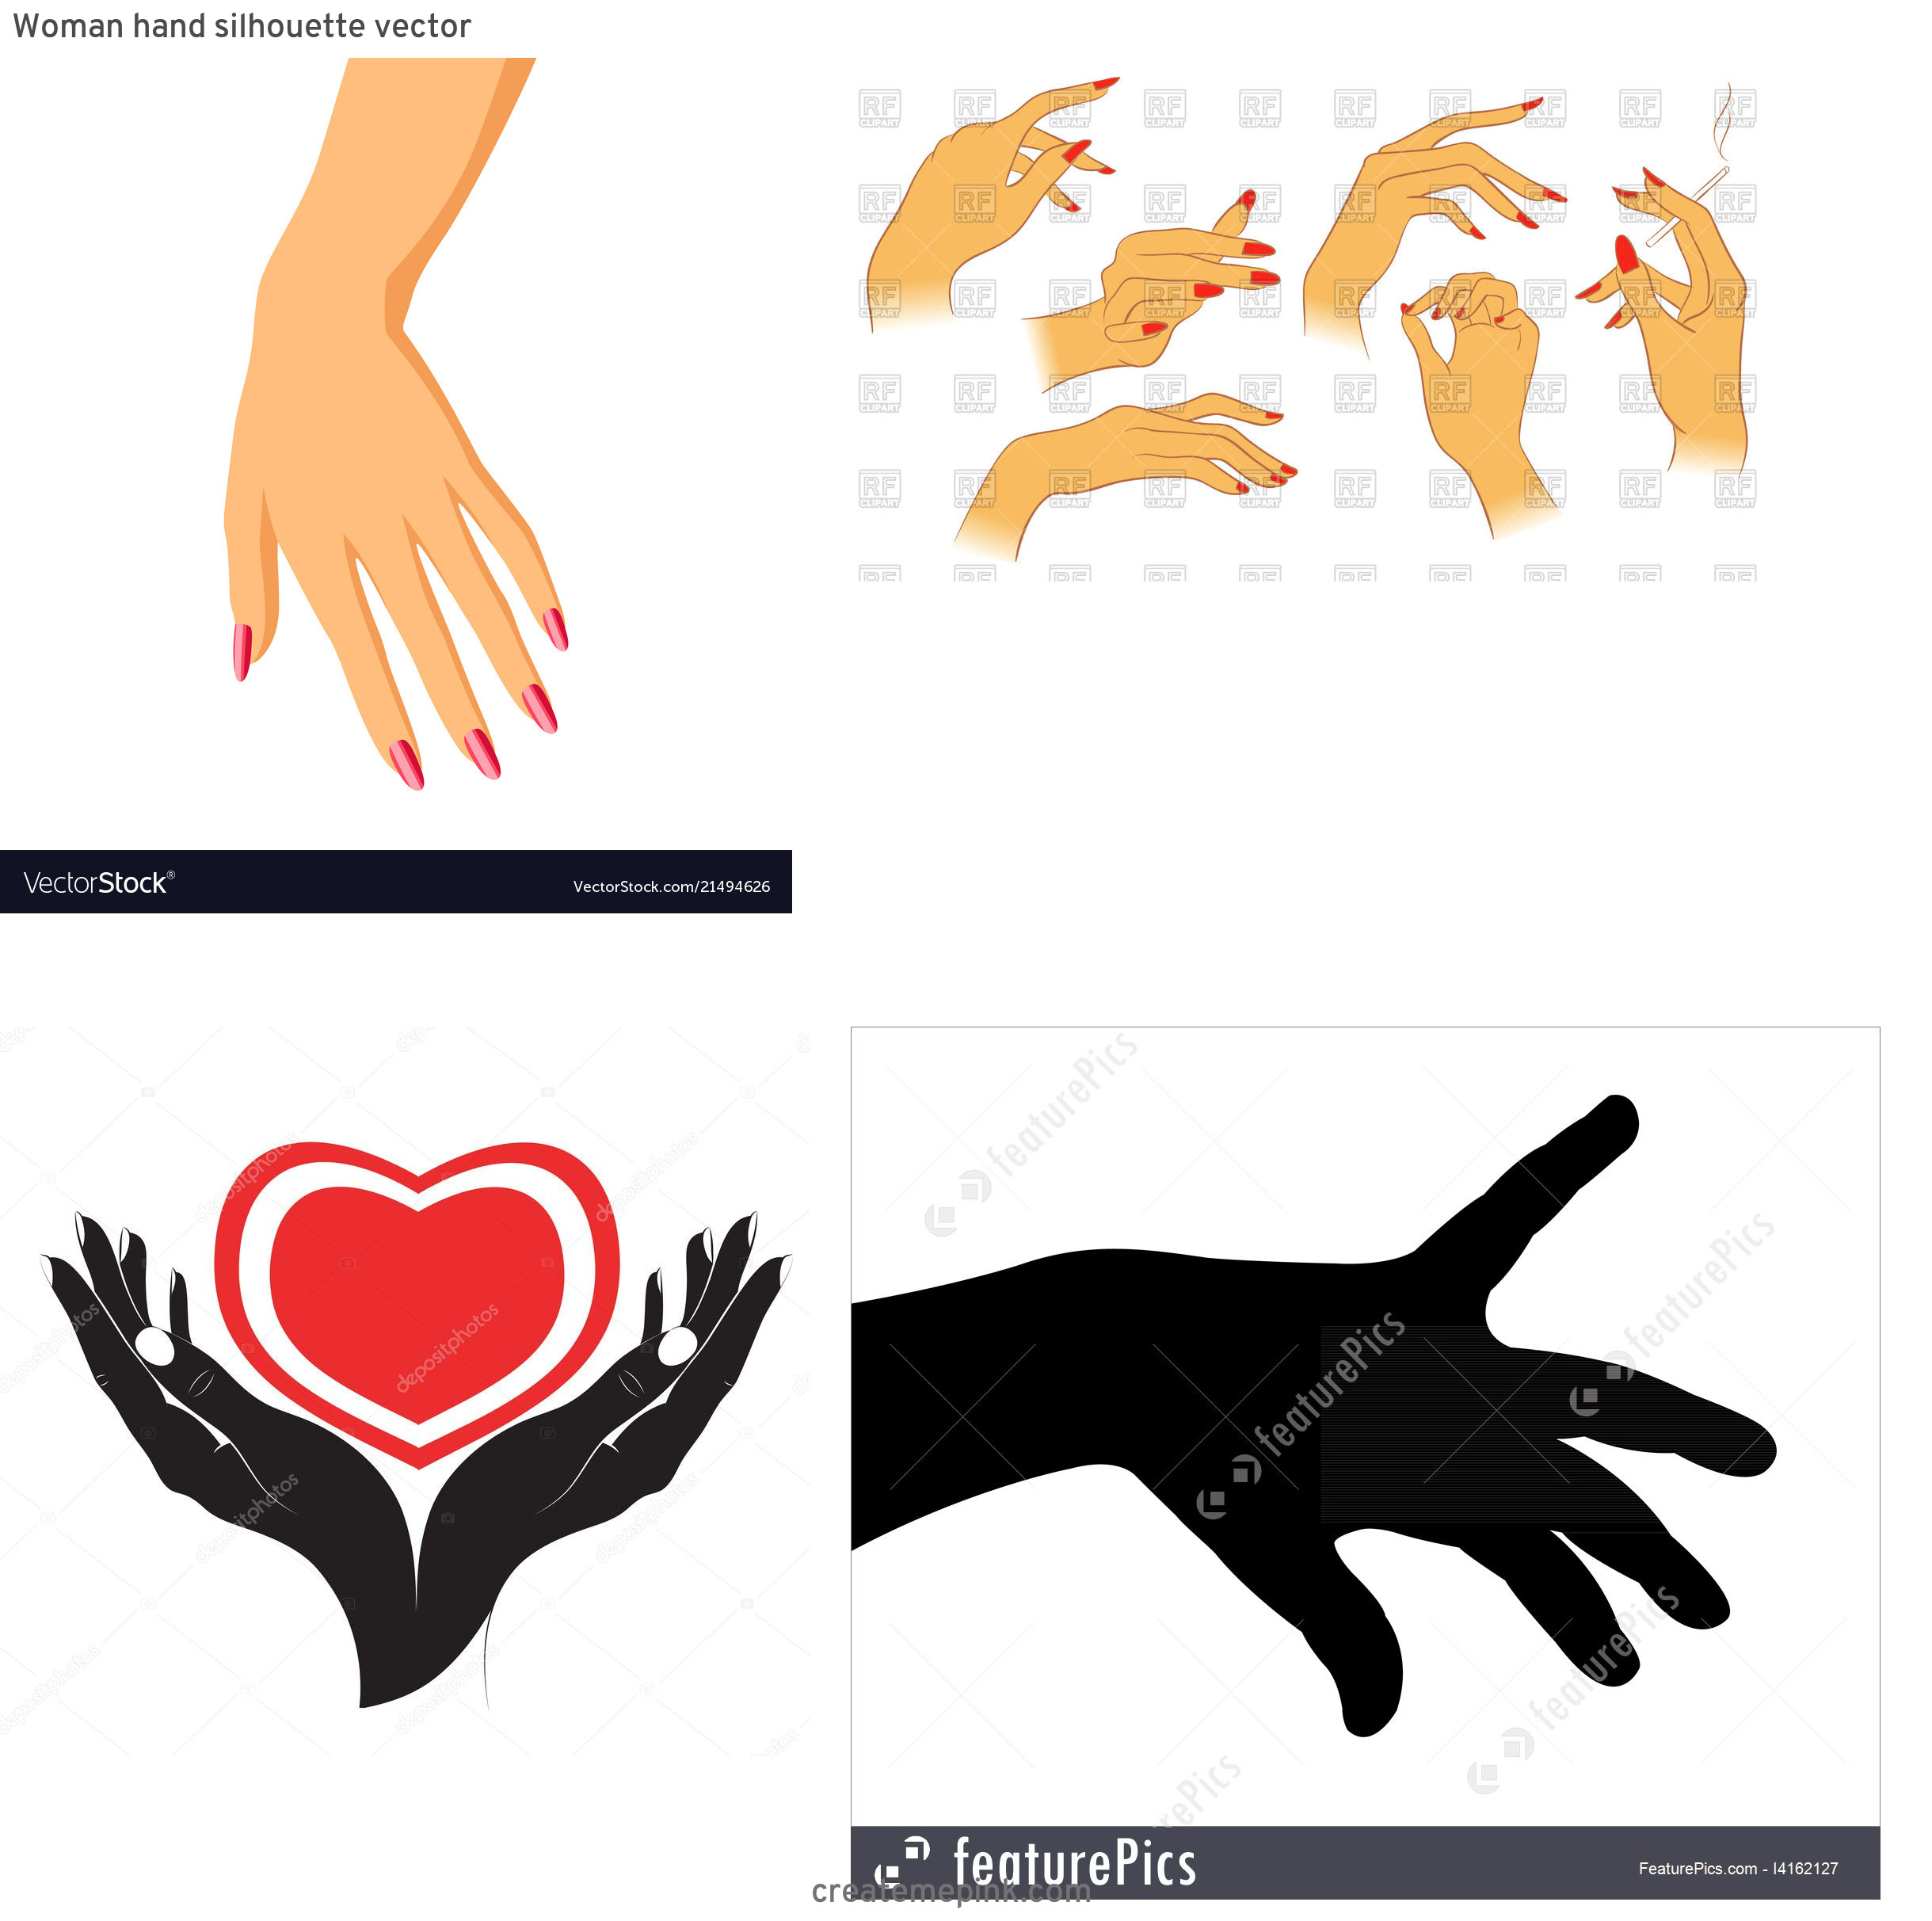 Female Hand Silhouette Vector: Woman Hand Silhouette Vector